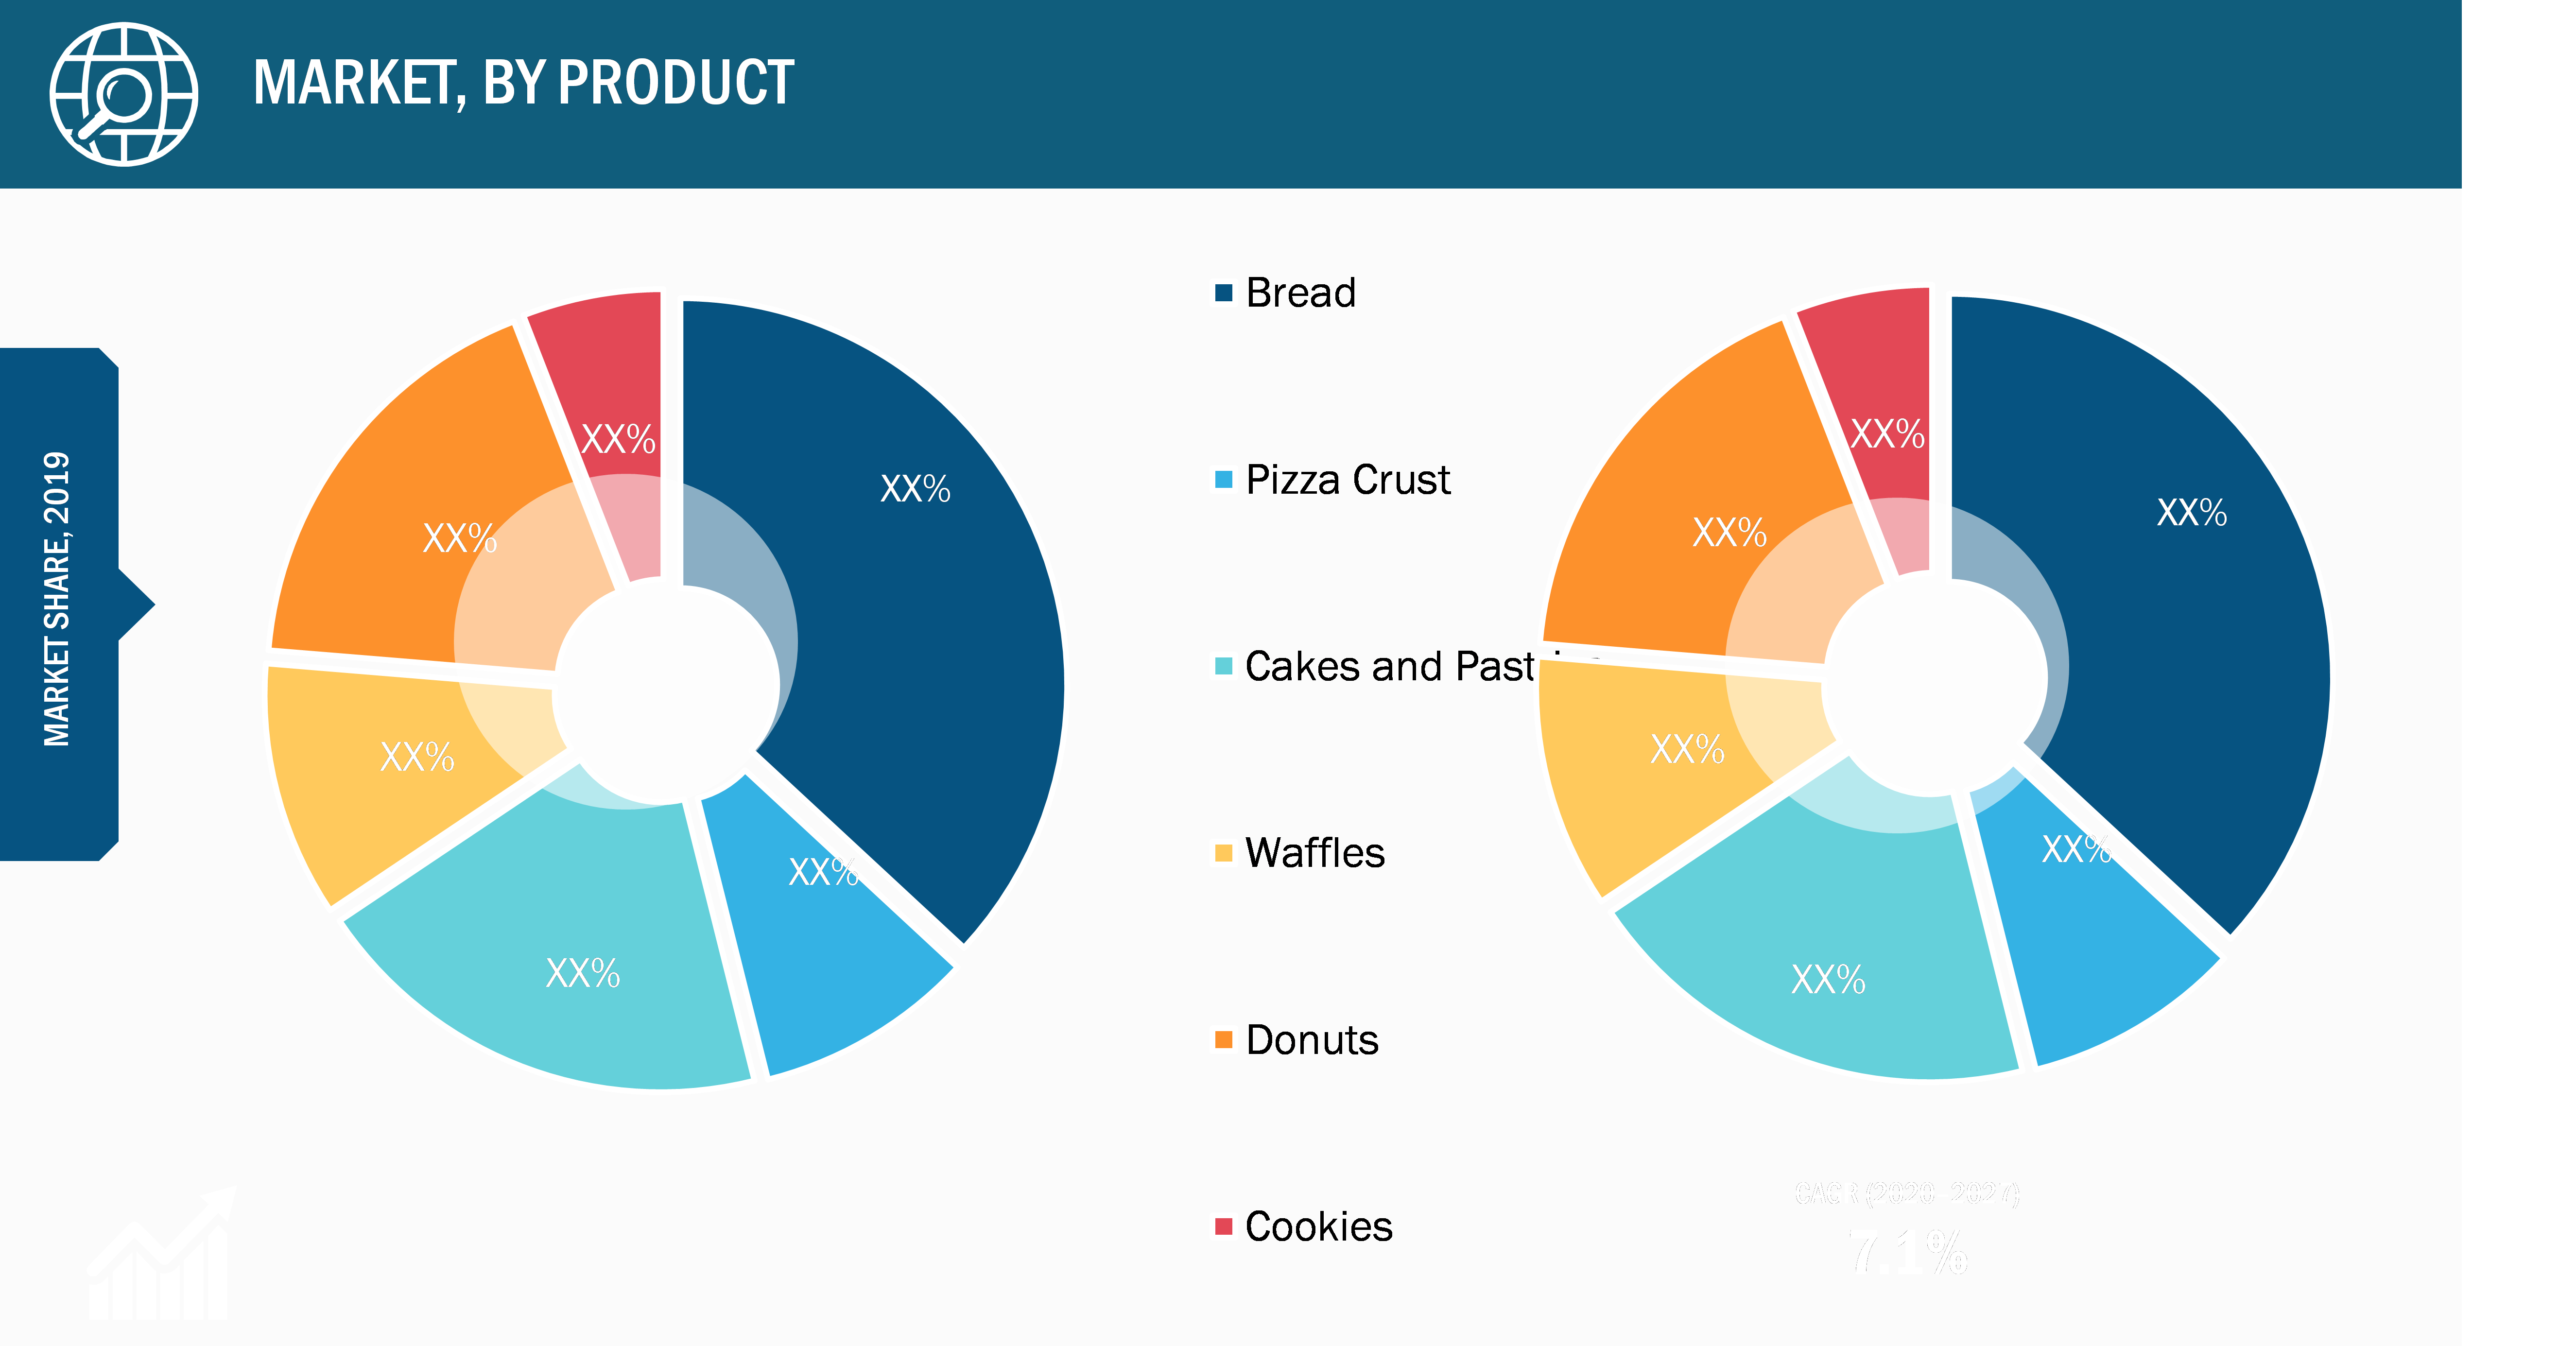 Asia Pacific Frozen Bakery Products Market, by Product – 2019 and 2027